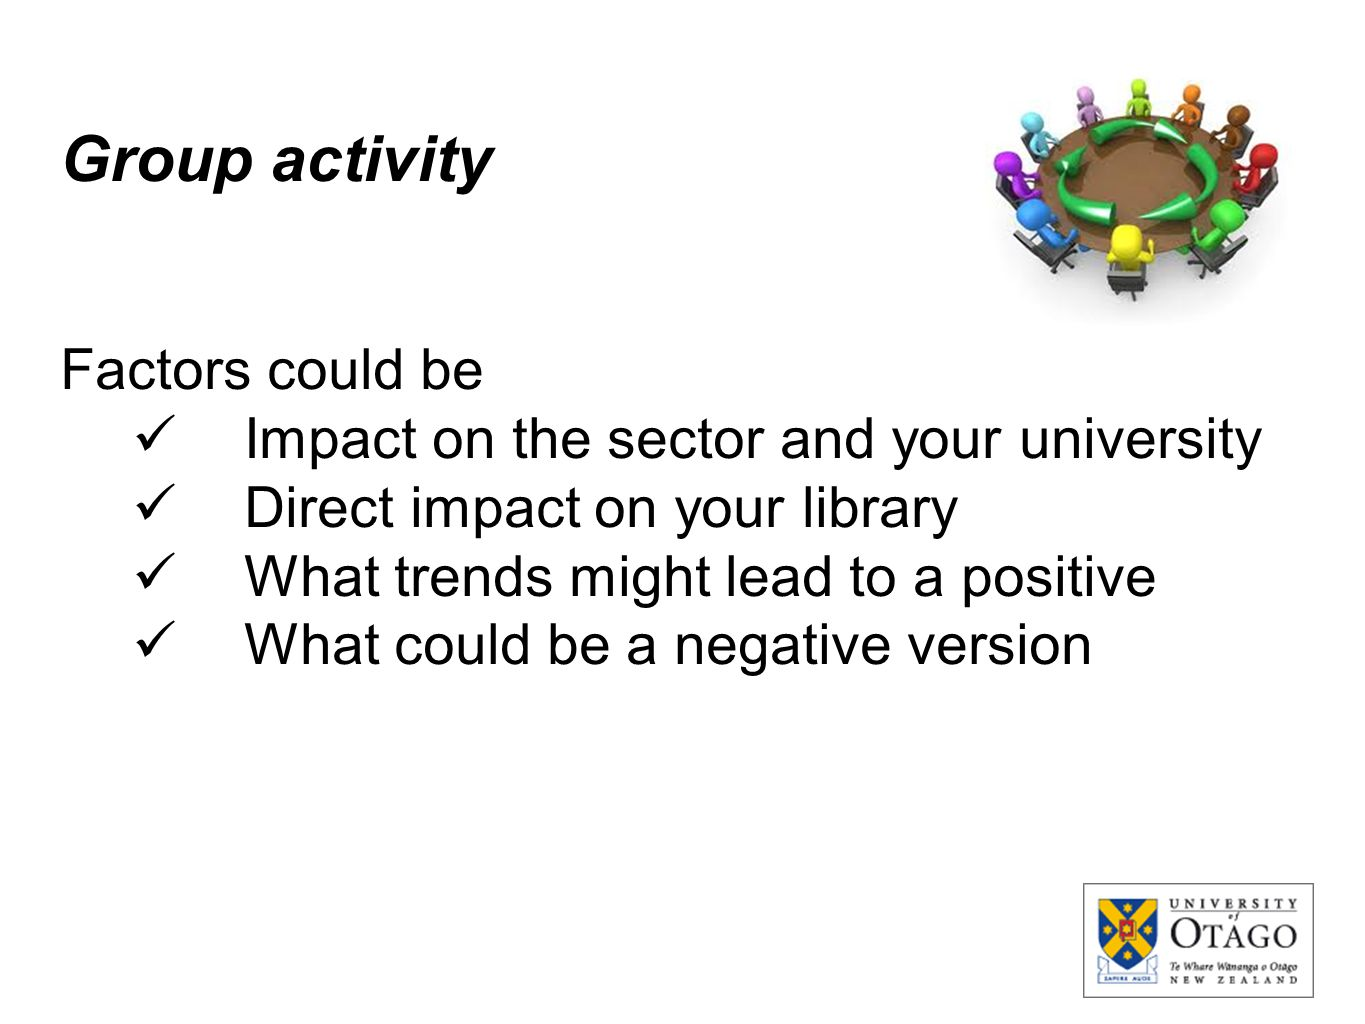 Group activity Factors could be Impact on the sector and your university Direct impact on your library What trends might lead to a positive What could